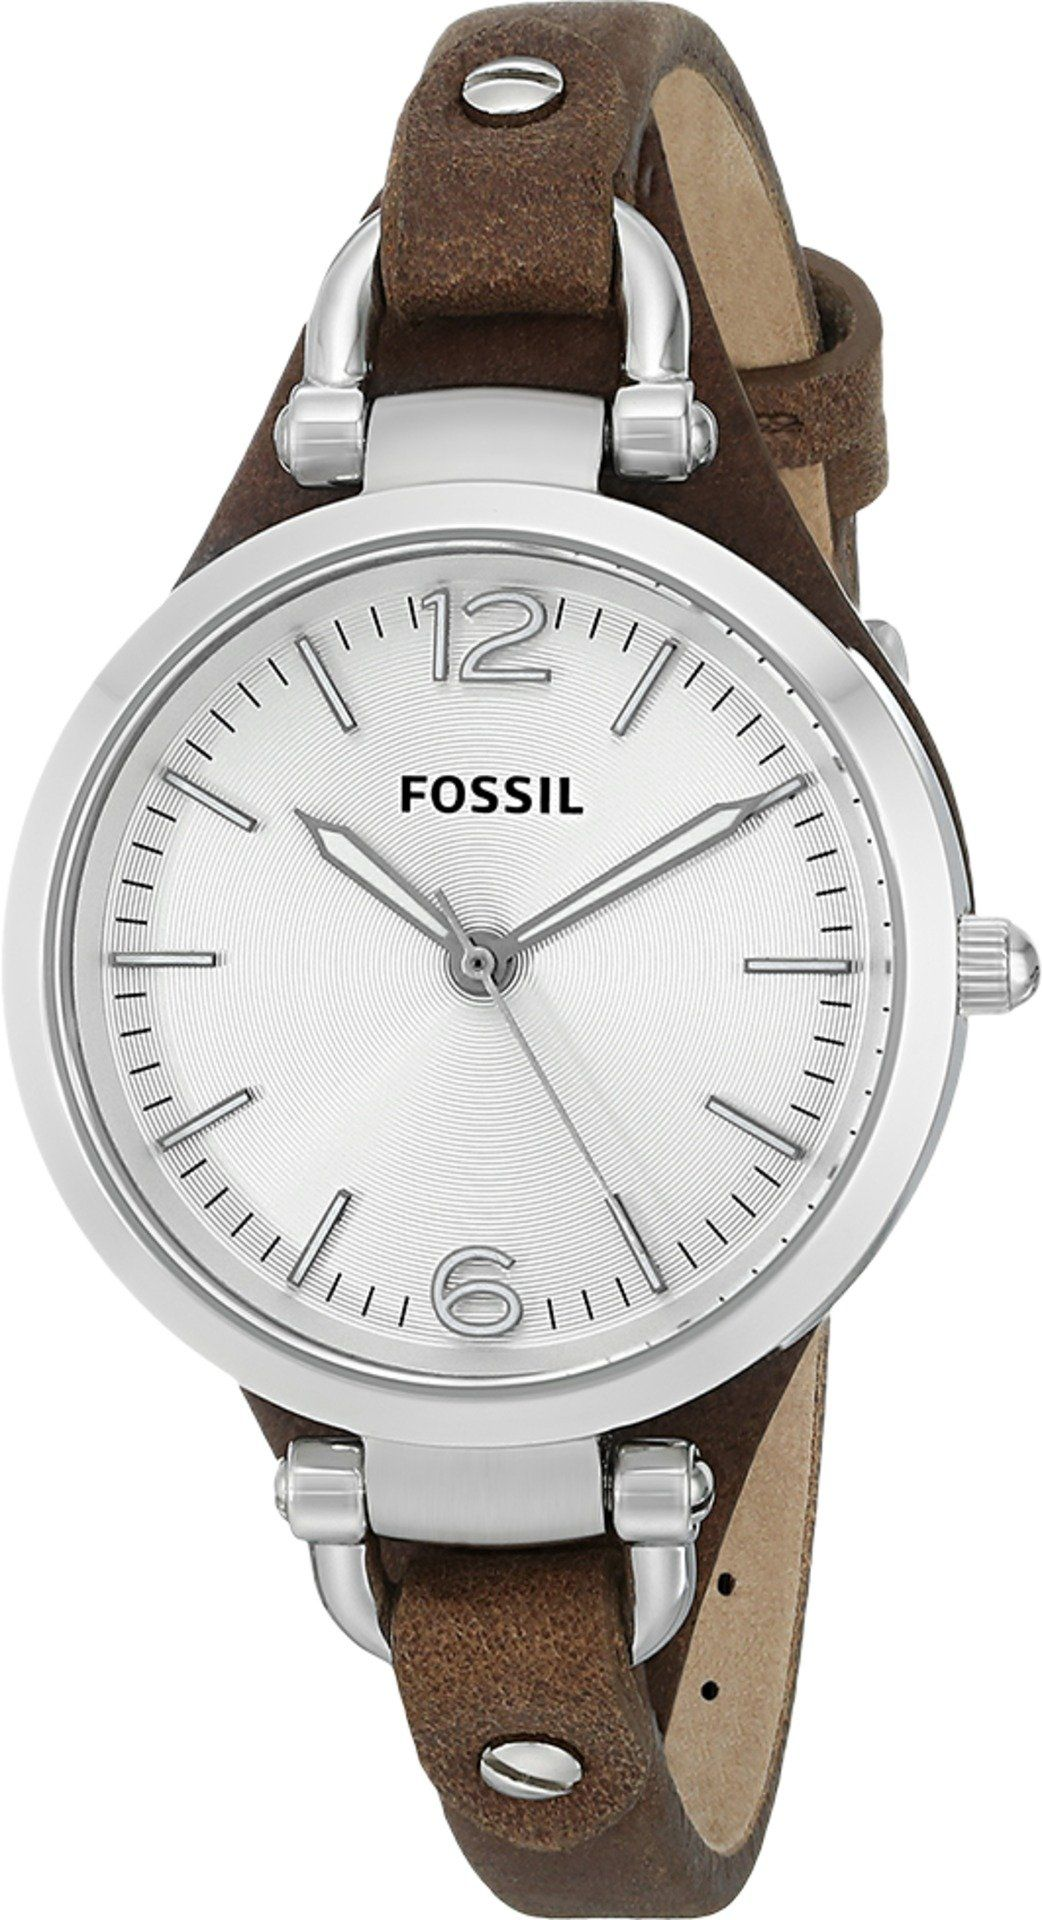 fa2e7f31c Watch For Girlfriend, Casual Watches, Cool Watches, Fossil Watches, Women's  Watches,